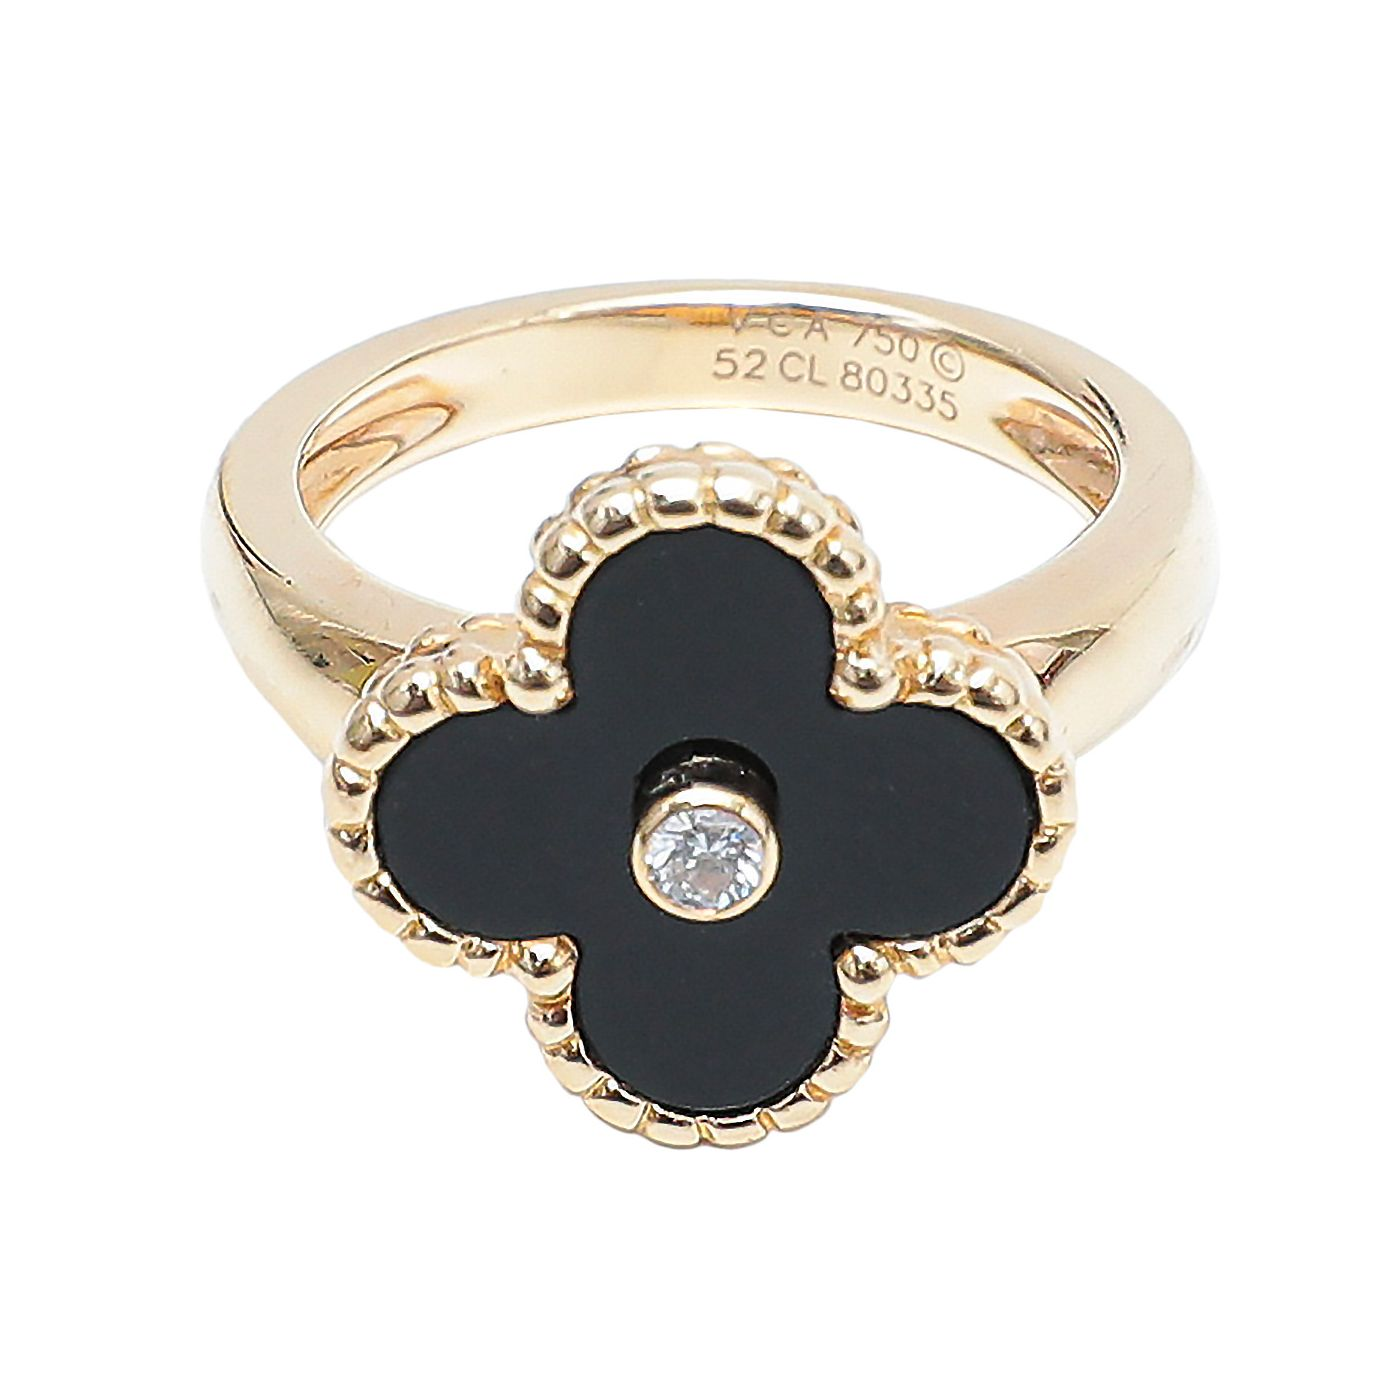 Van Cleef & Arpels 18K Yellow Gold with Onyx Diamond Ring 52